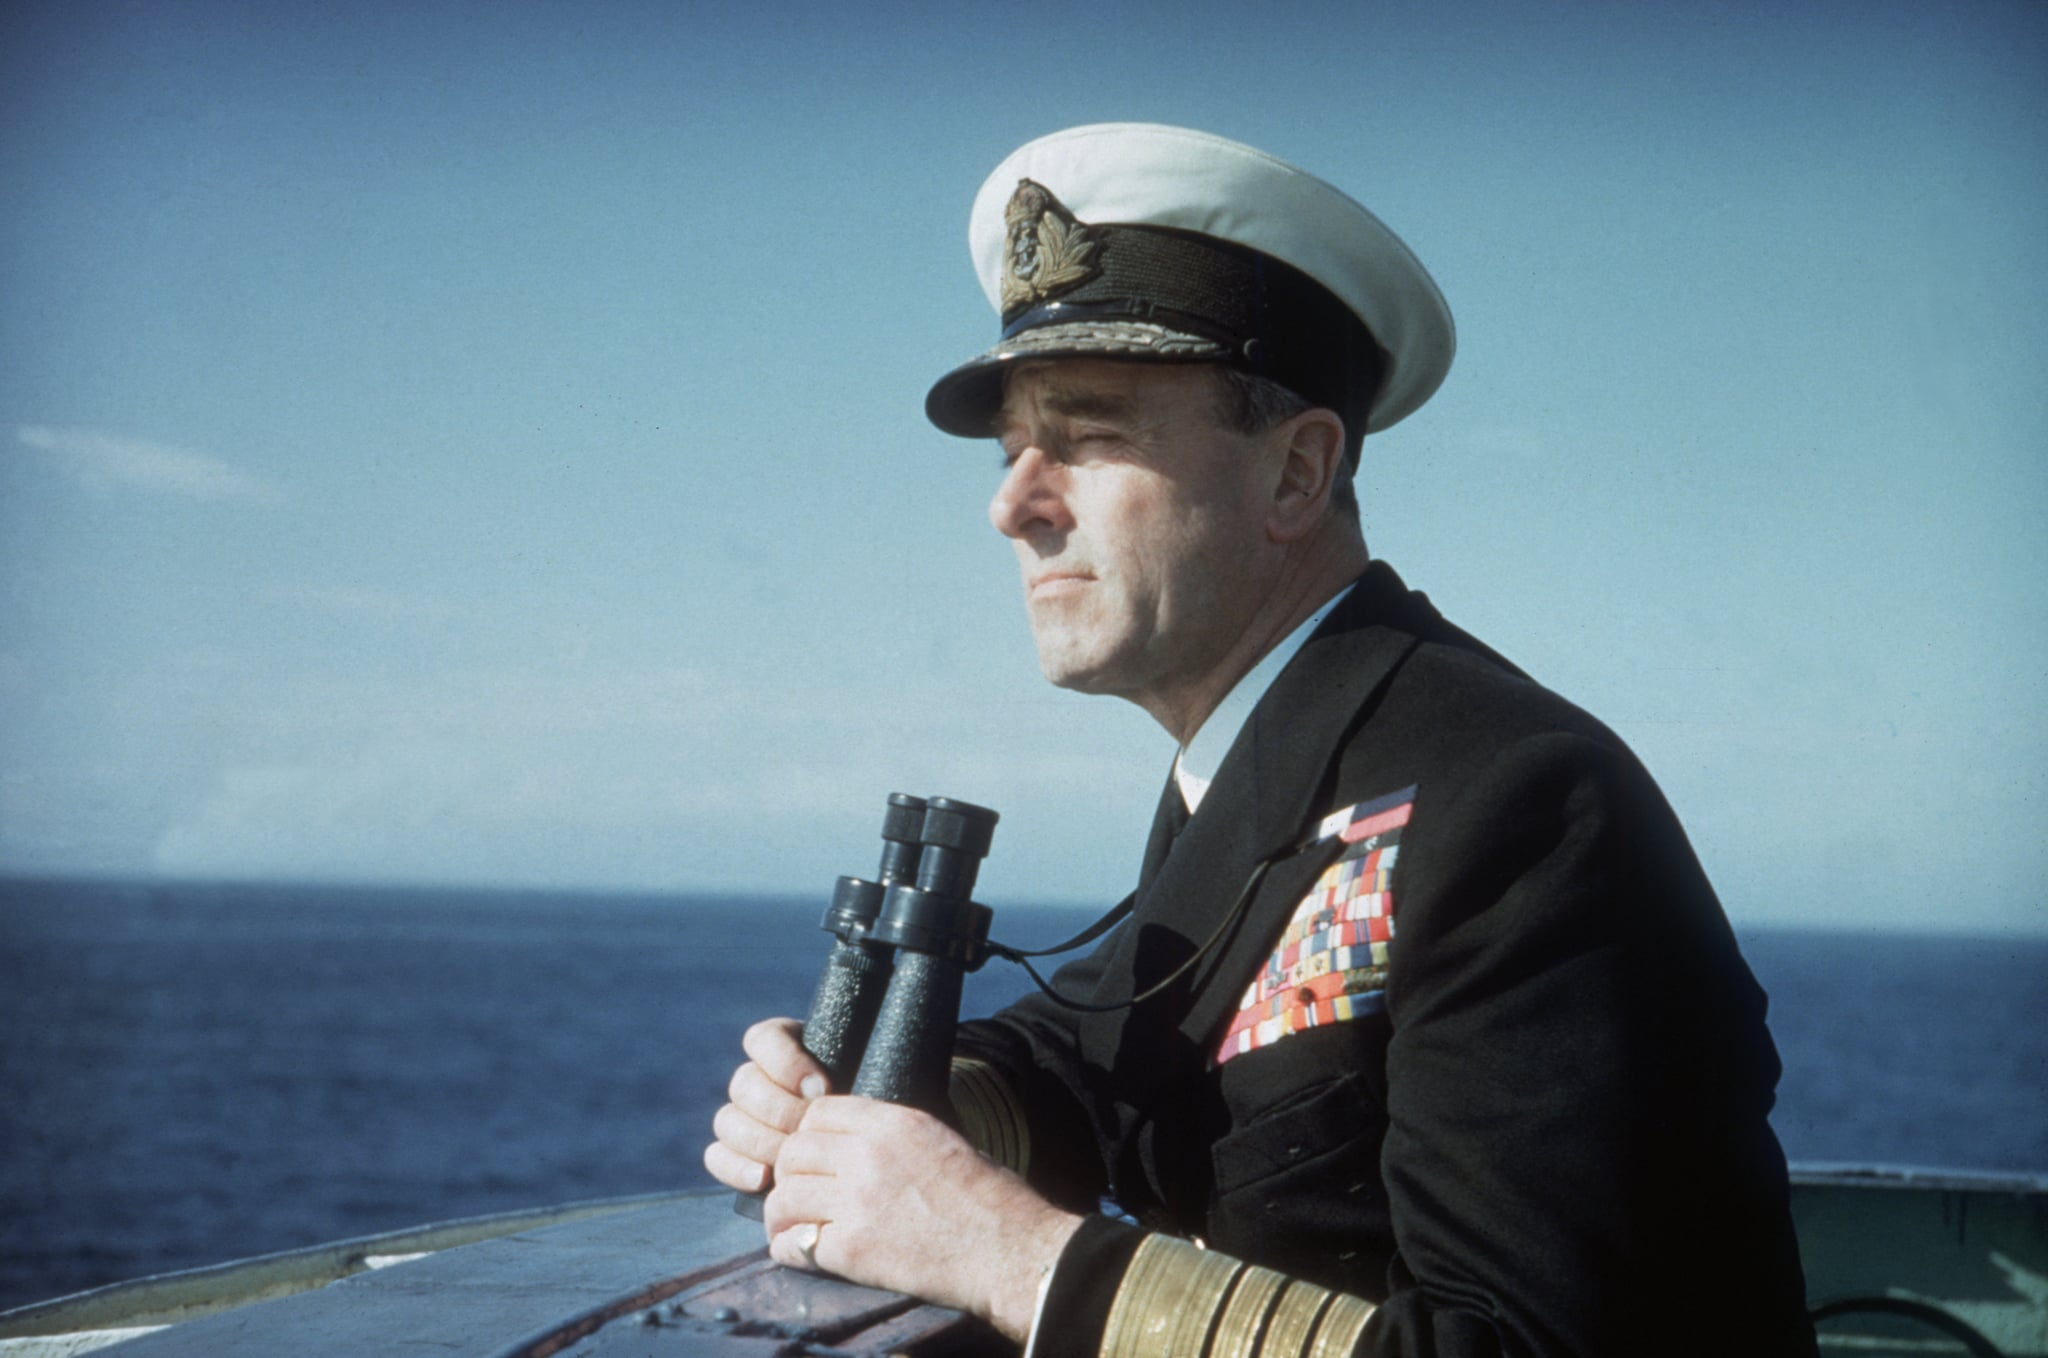 Lord Mountbatten, 1st Earl Mountbatten of Burma (1900 - 1979), Commander of the Mediterranean Fleet, on naval exercises at Malta and Gibraltar in 1956. (Photo by Hulton Archive/Getty Images)